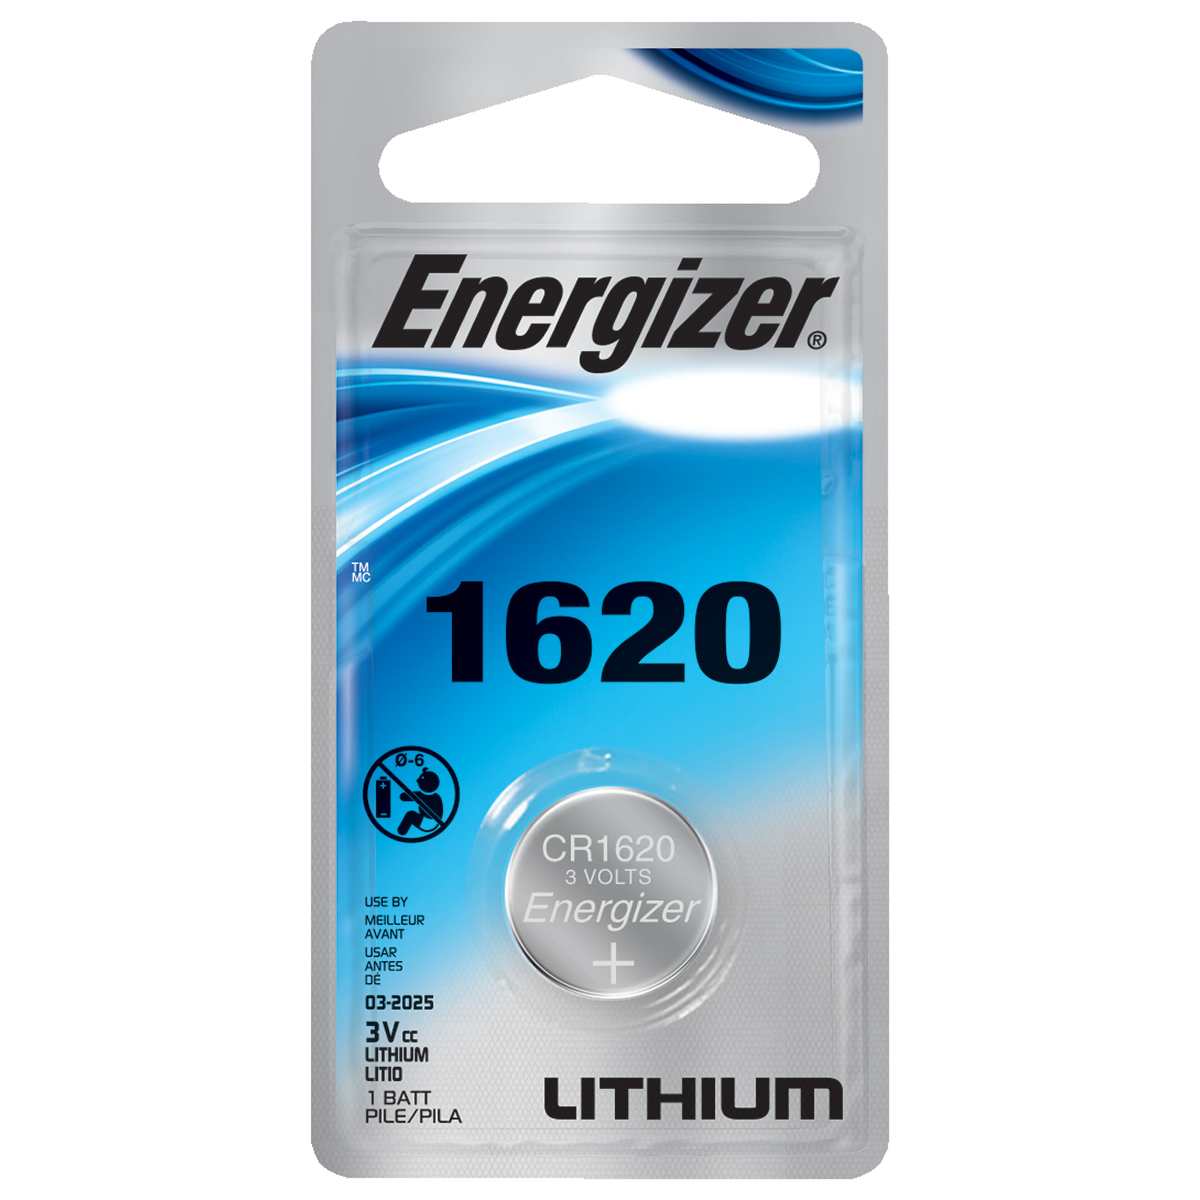 Energizer Lithium CR1620 Button Cell Battery